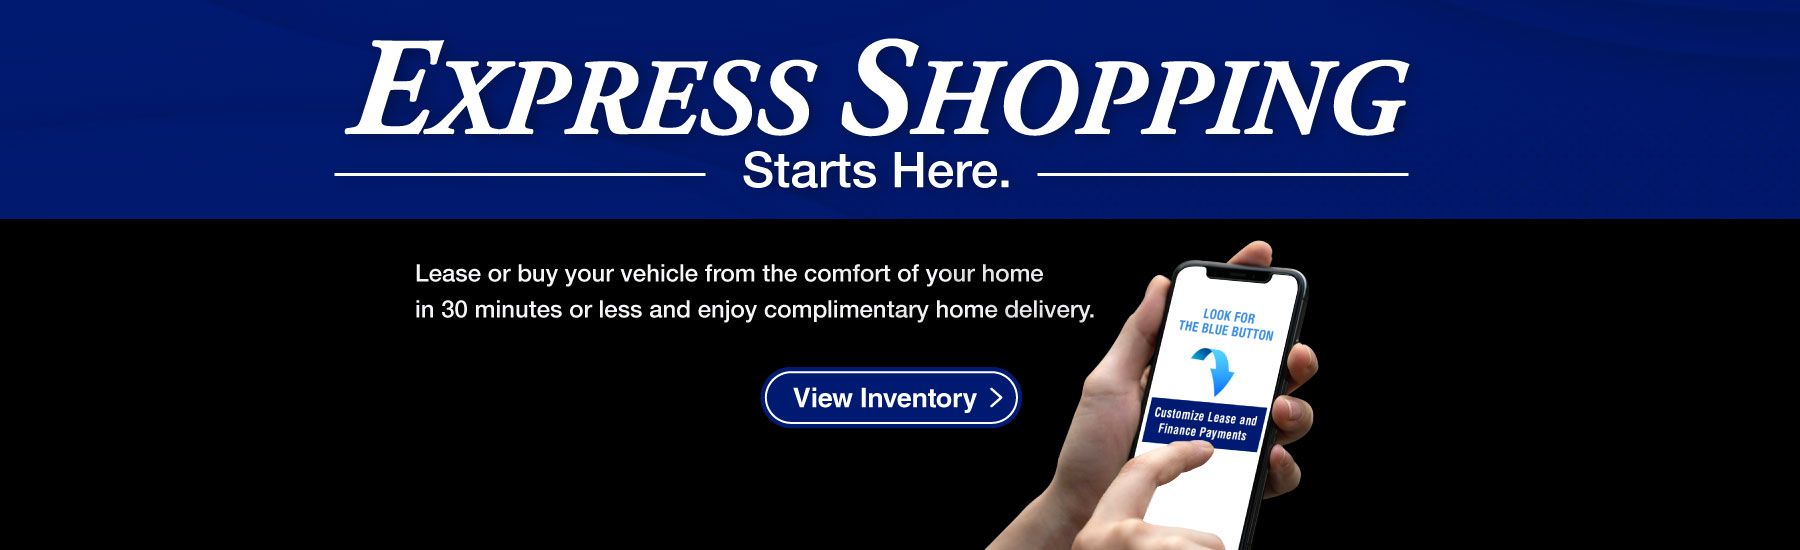 Volvo Danbury Express Shopping Image